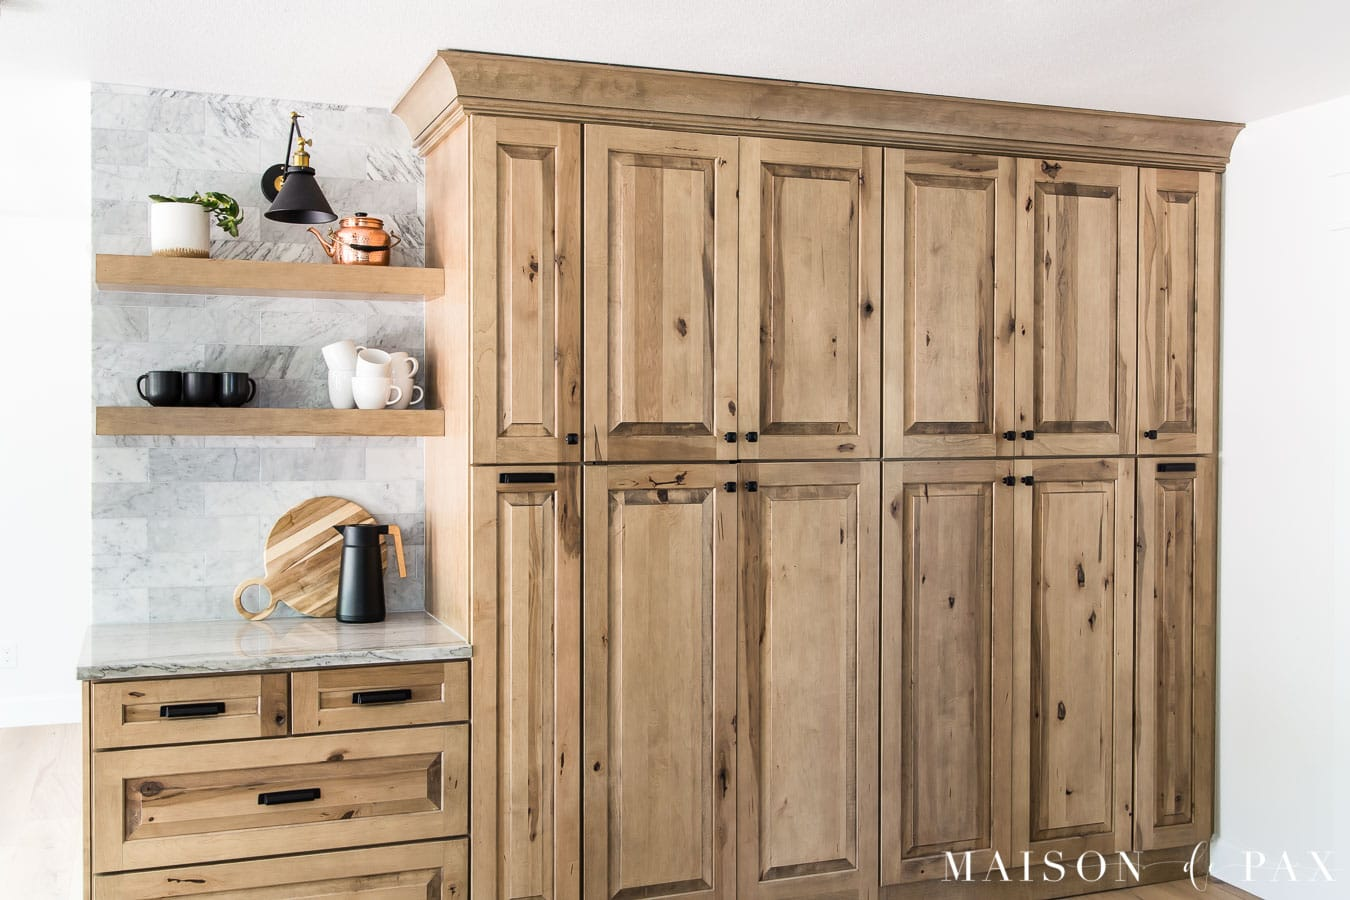 floor to ceiling wood pantry cabinets